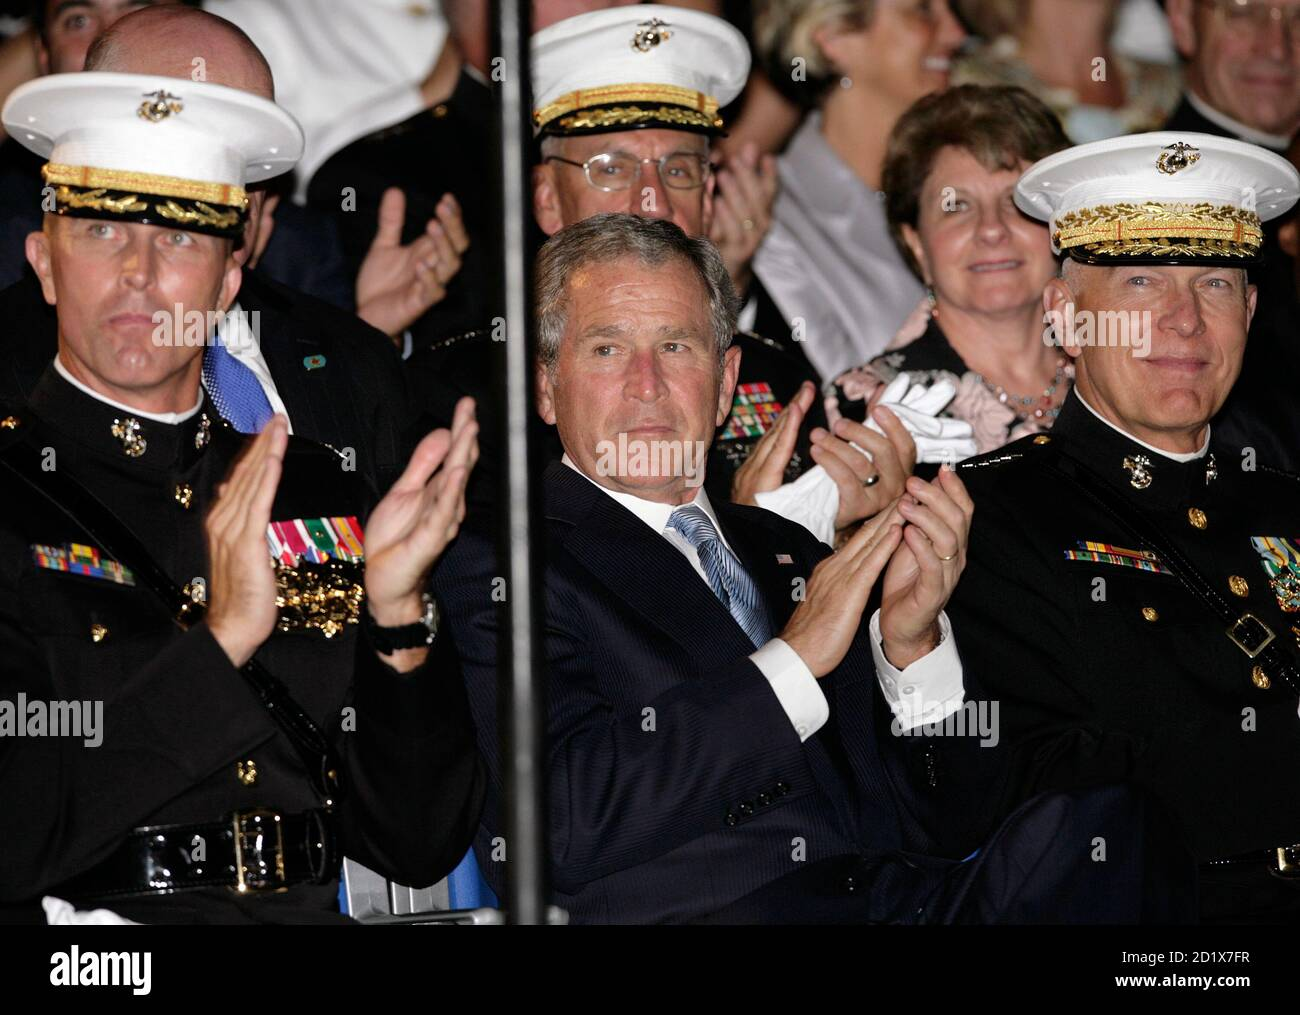 U.S. President George W. Bush (C) applauds with Gen. James Conway, Commandant of the Marine Corps, and Col. Andrew H. Smith (L), Commanding Officer of the Marine Barracks of Washington, during an Evening Parade at the Marine Barracks in Washington August 29, 2008. REUTERS/Yuri Gripas  (UNITED STATES) Stock Photo